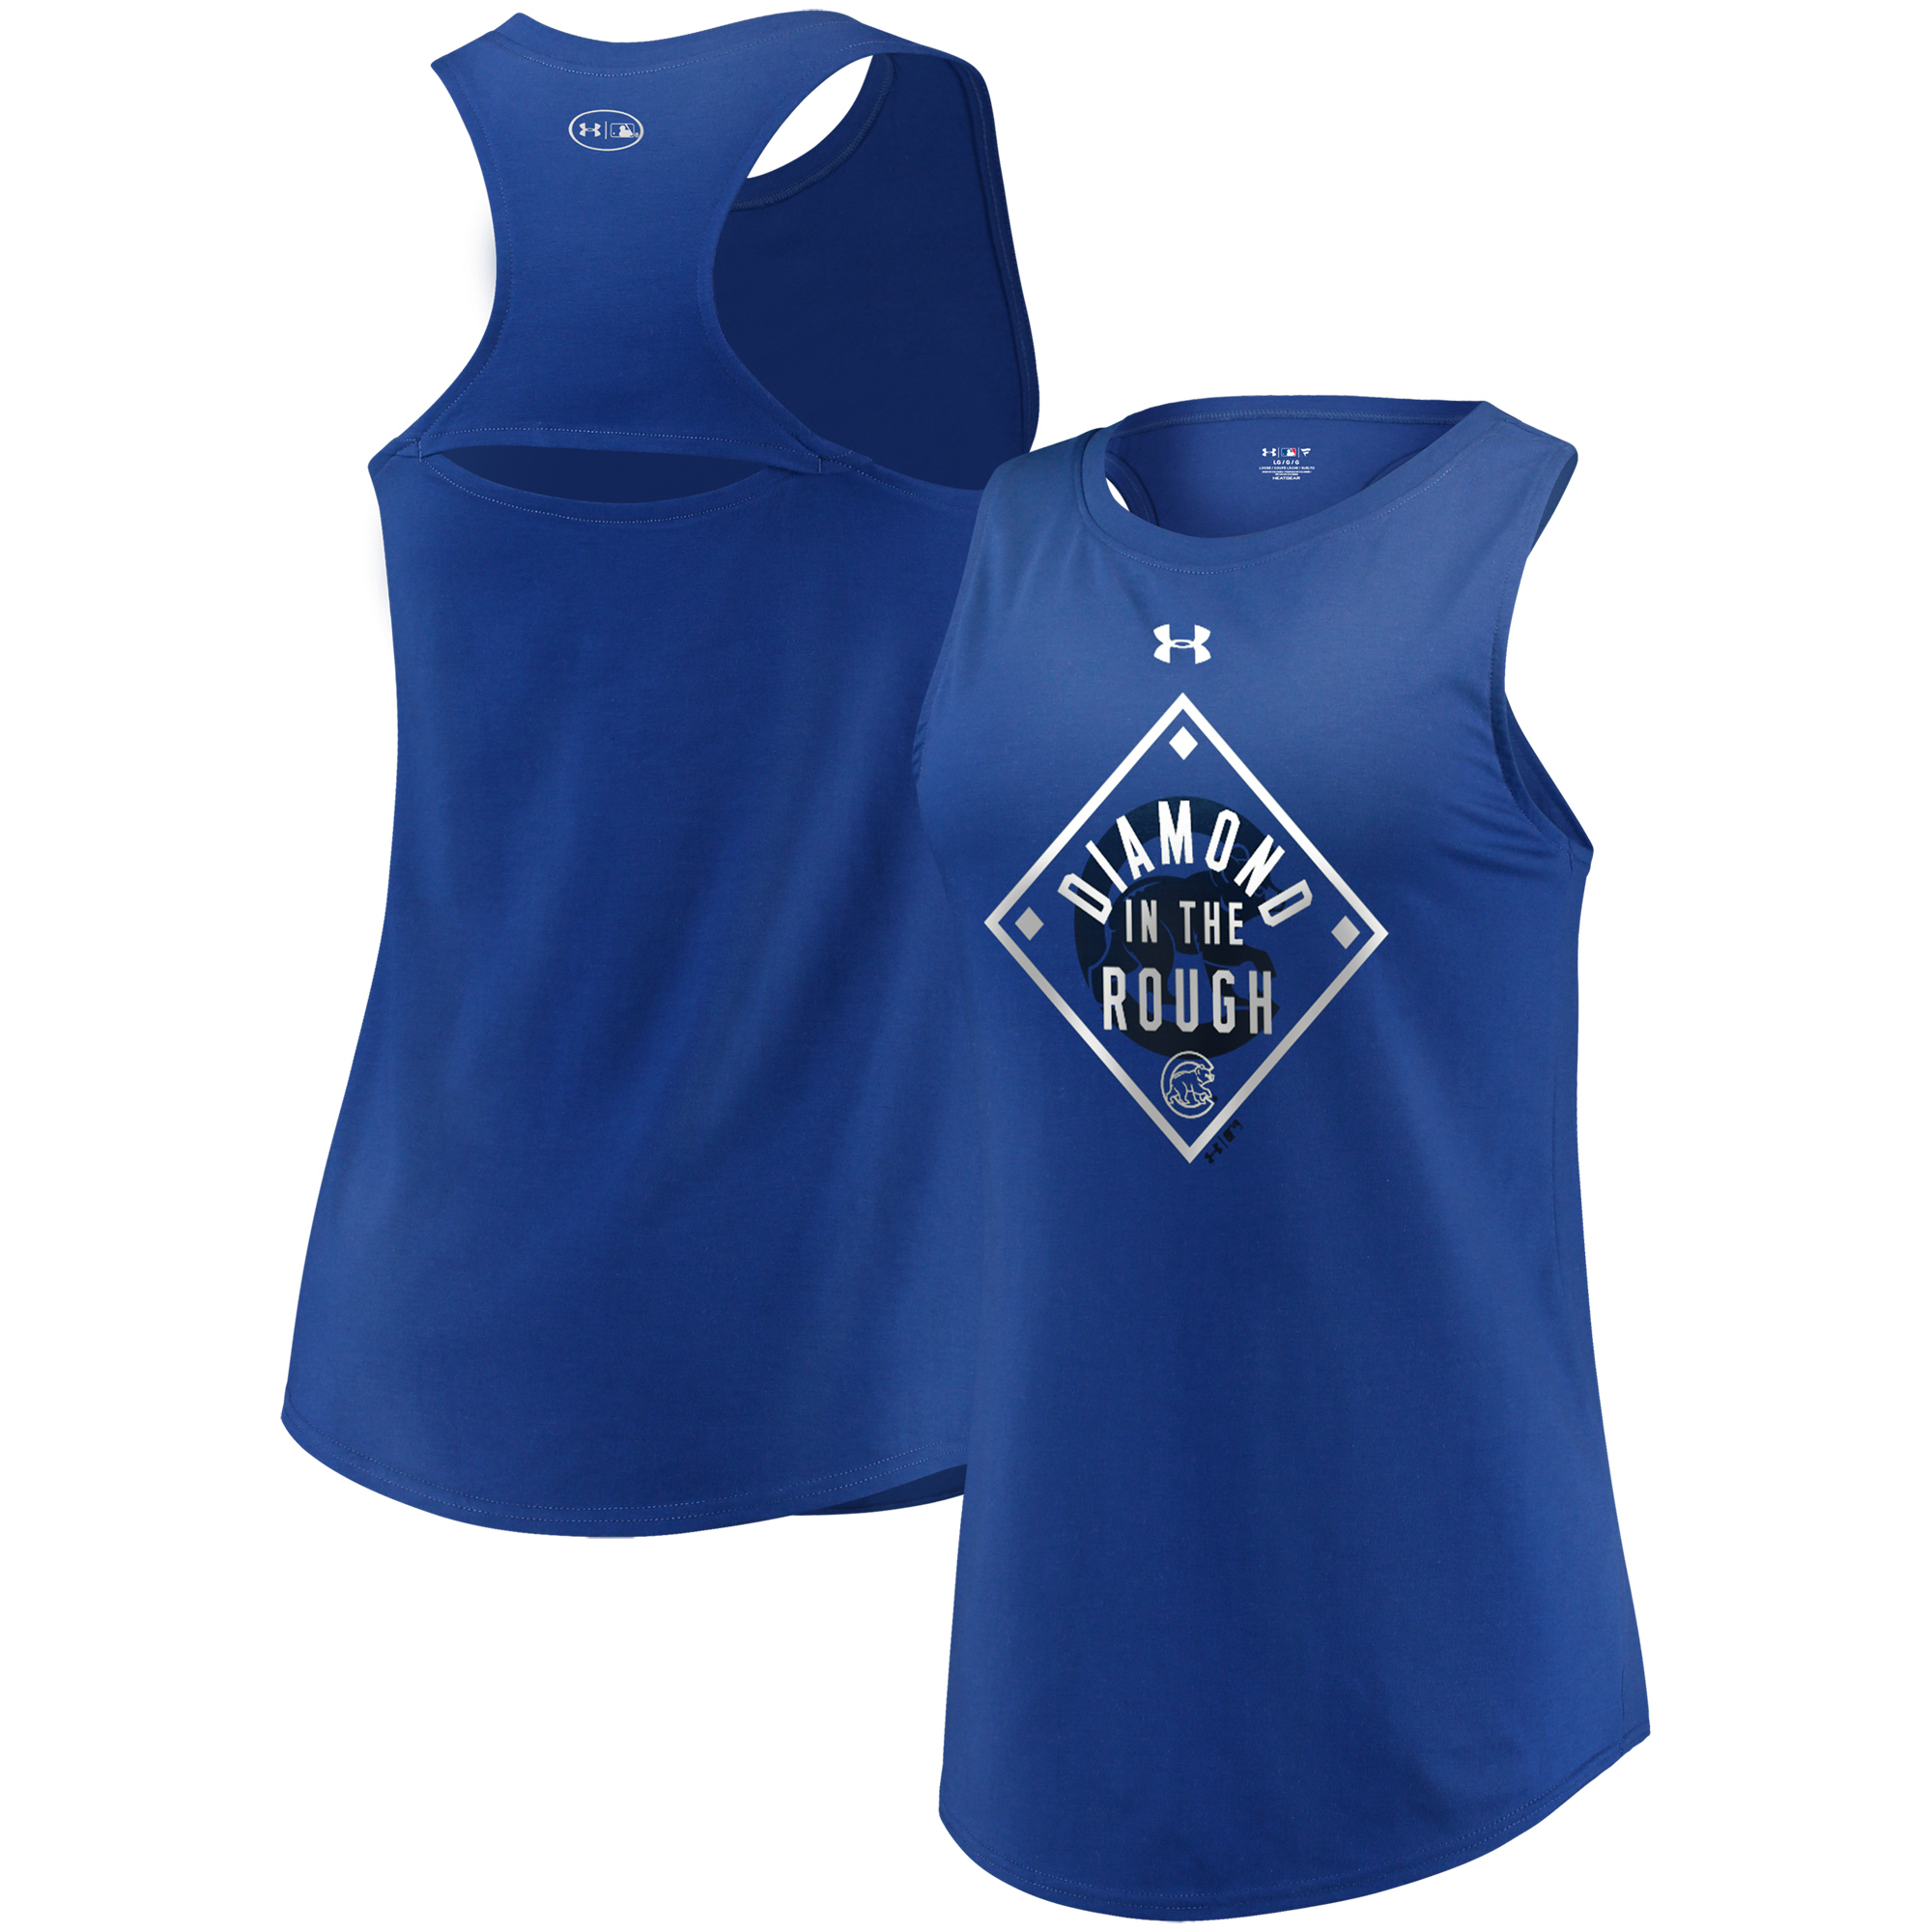 Chicago Cubs Under Armour Women's Passion Diamond Tri-Blend Performance Tank Top - Royal